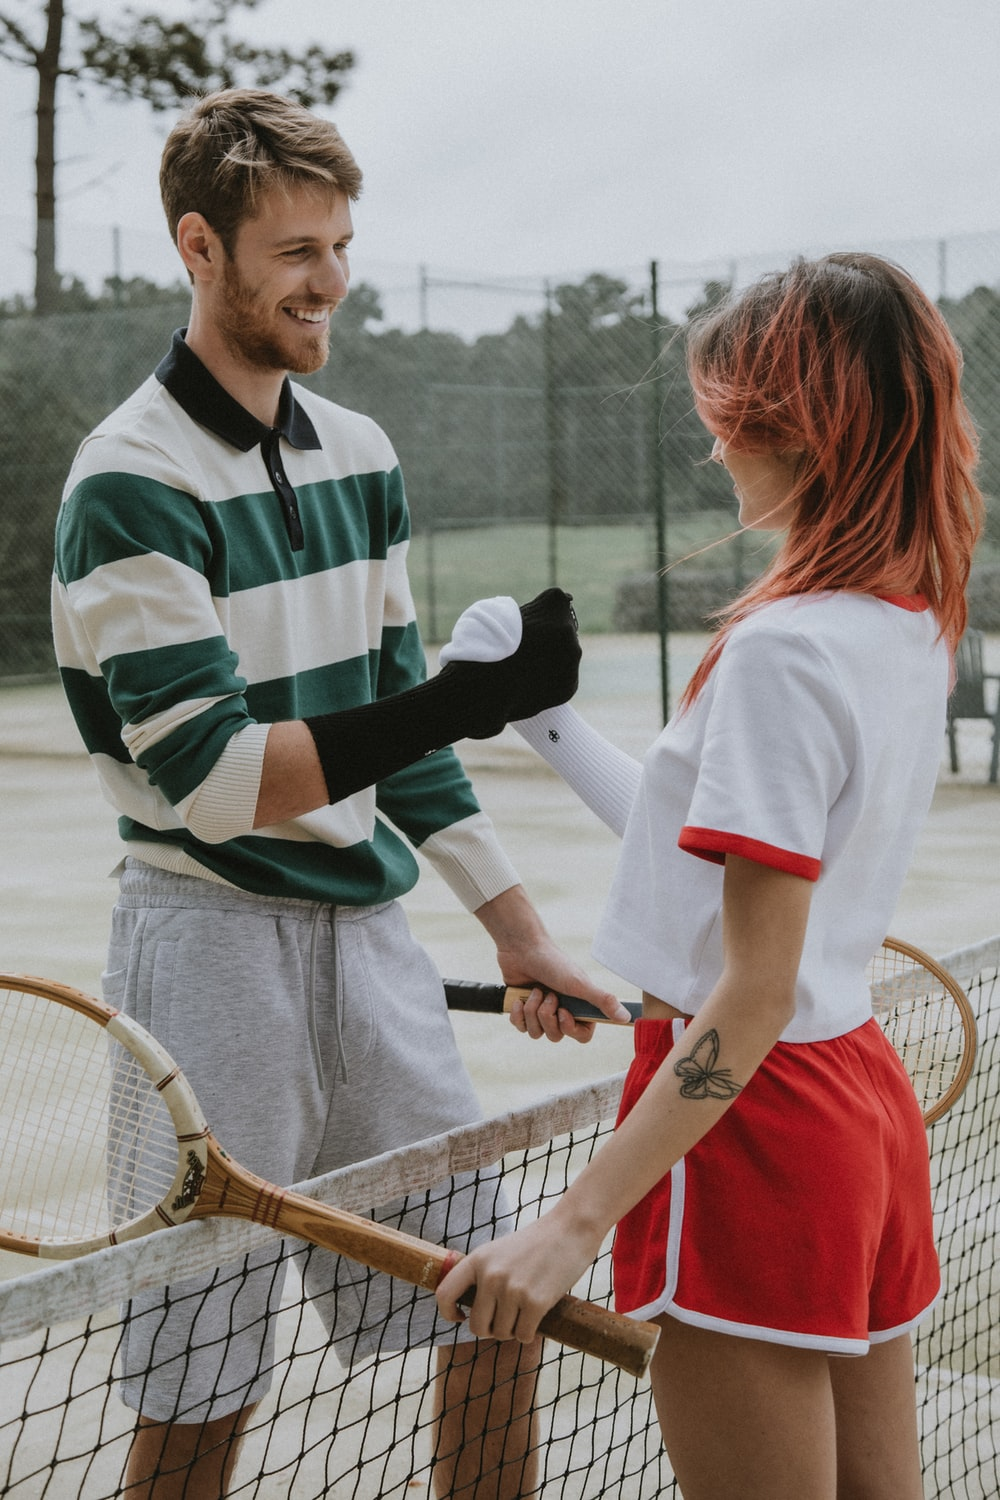 man in white and green striped polo shirt holding brown tennis racket